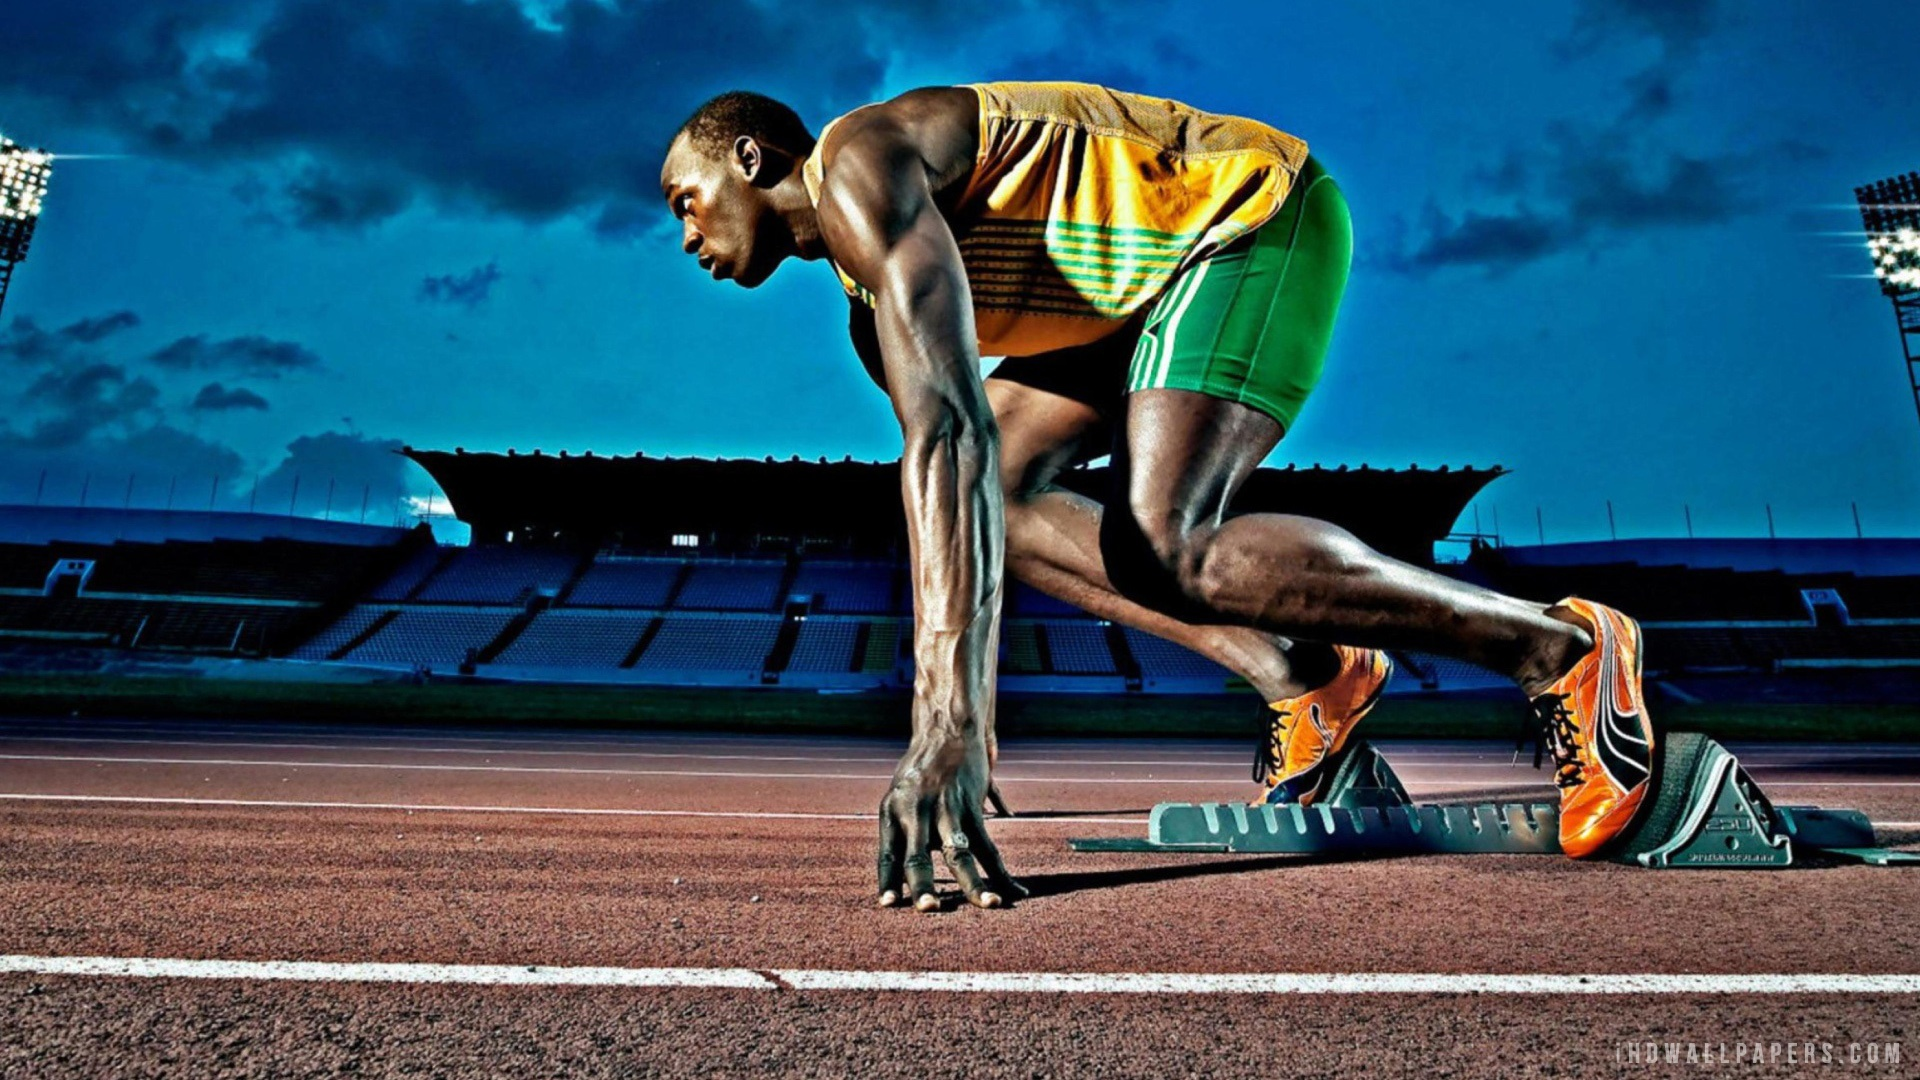 9 Usain Bolt Wallpaper6 600x338